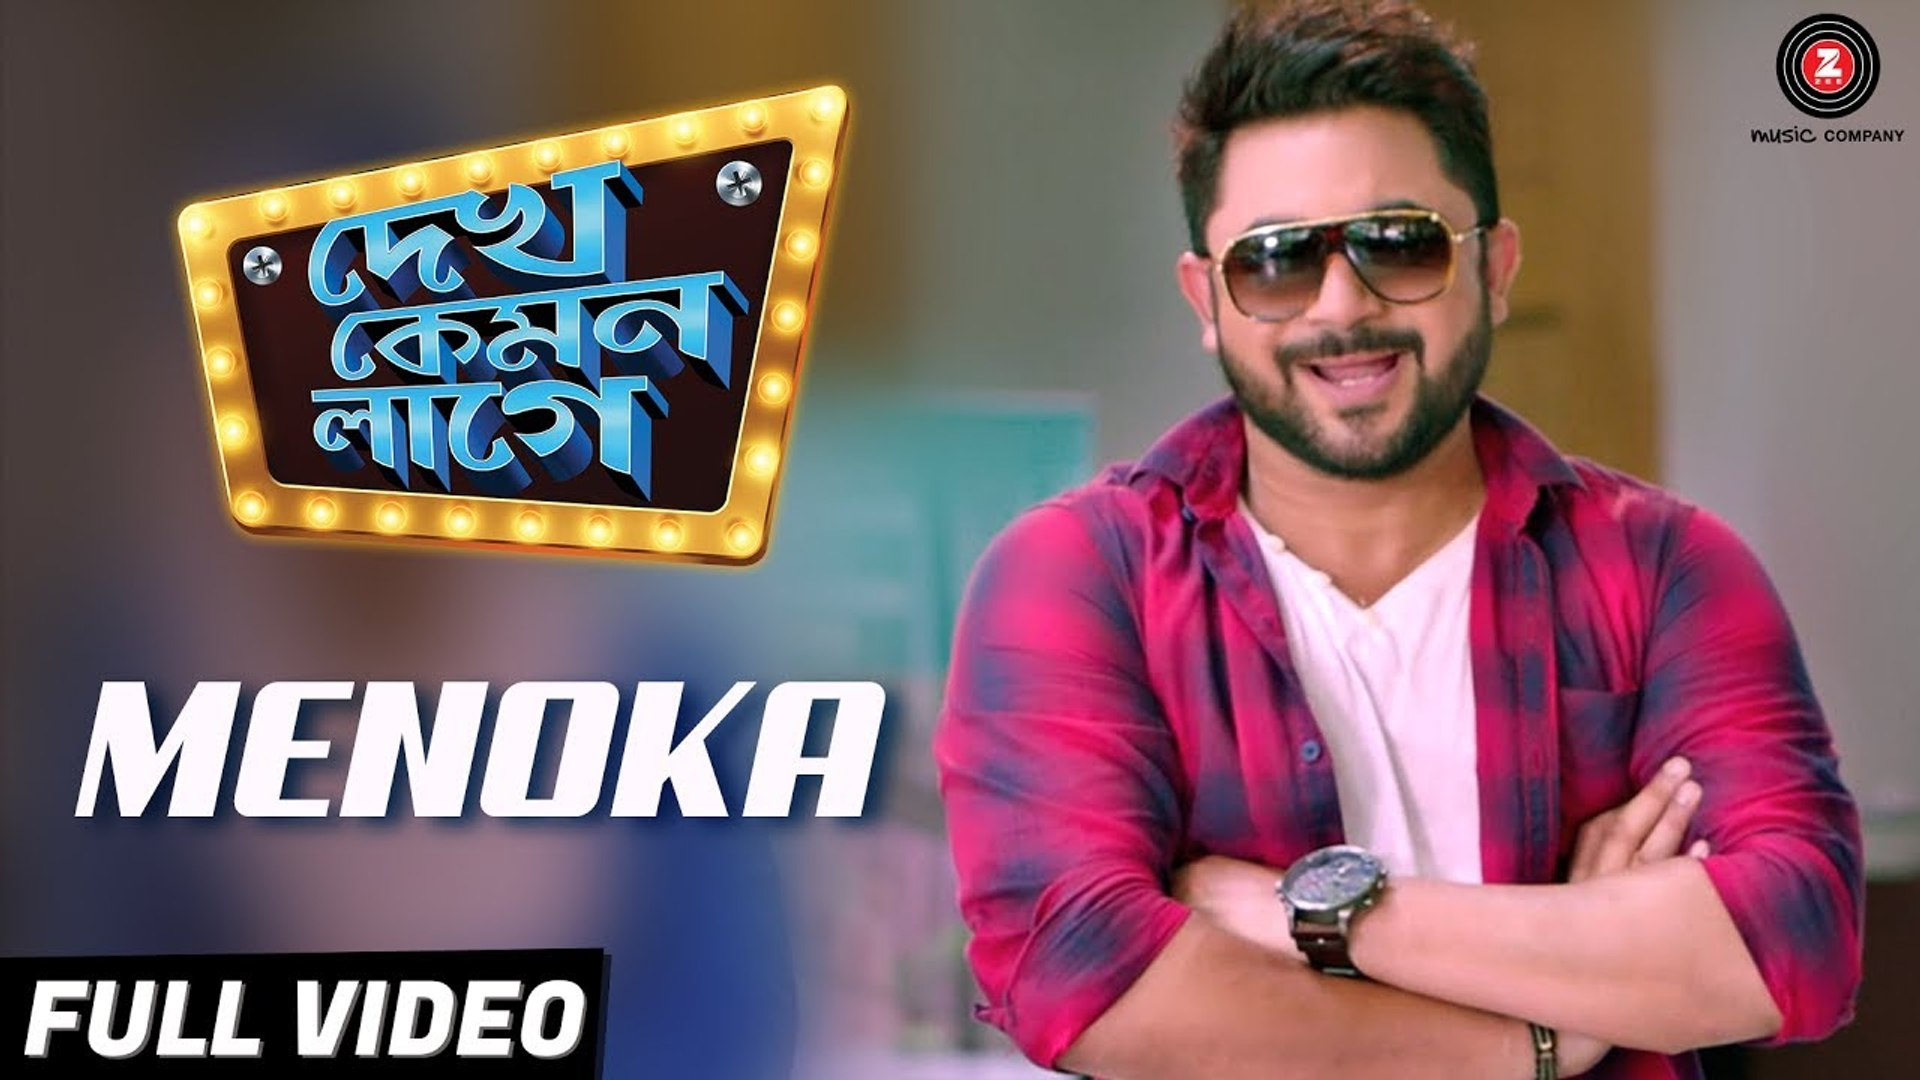 Menoka Full HD Video Song Dekh Kemon Lage 2017 - Soham - Jeet Gannguli -  Raja Chanda - Abhijit Guha & Sudeshna Roy - New Bengali Song